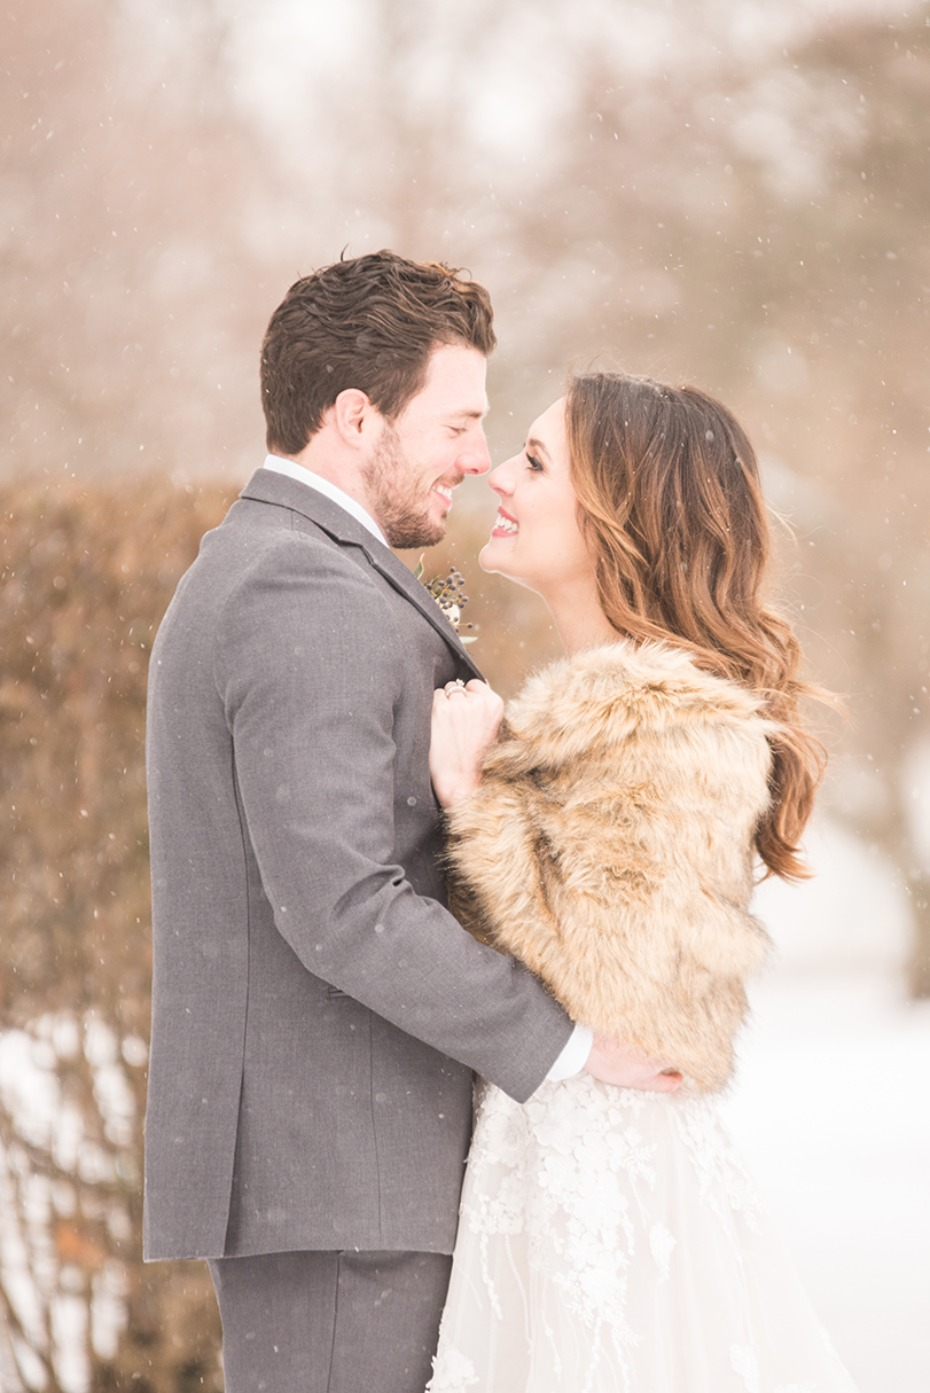 saying i do in a magical snow fall